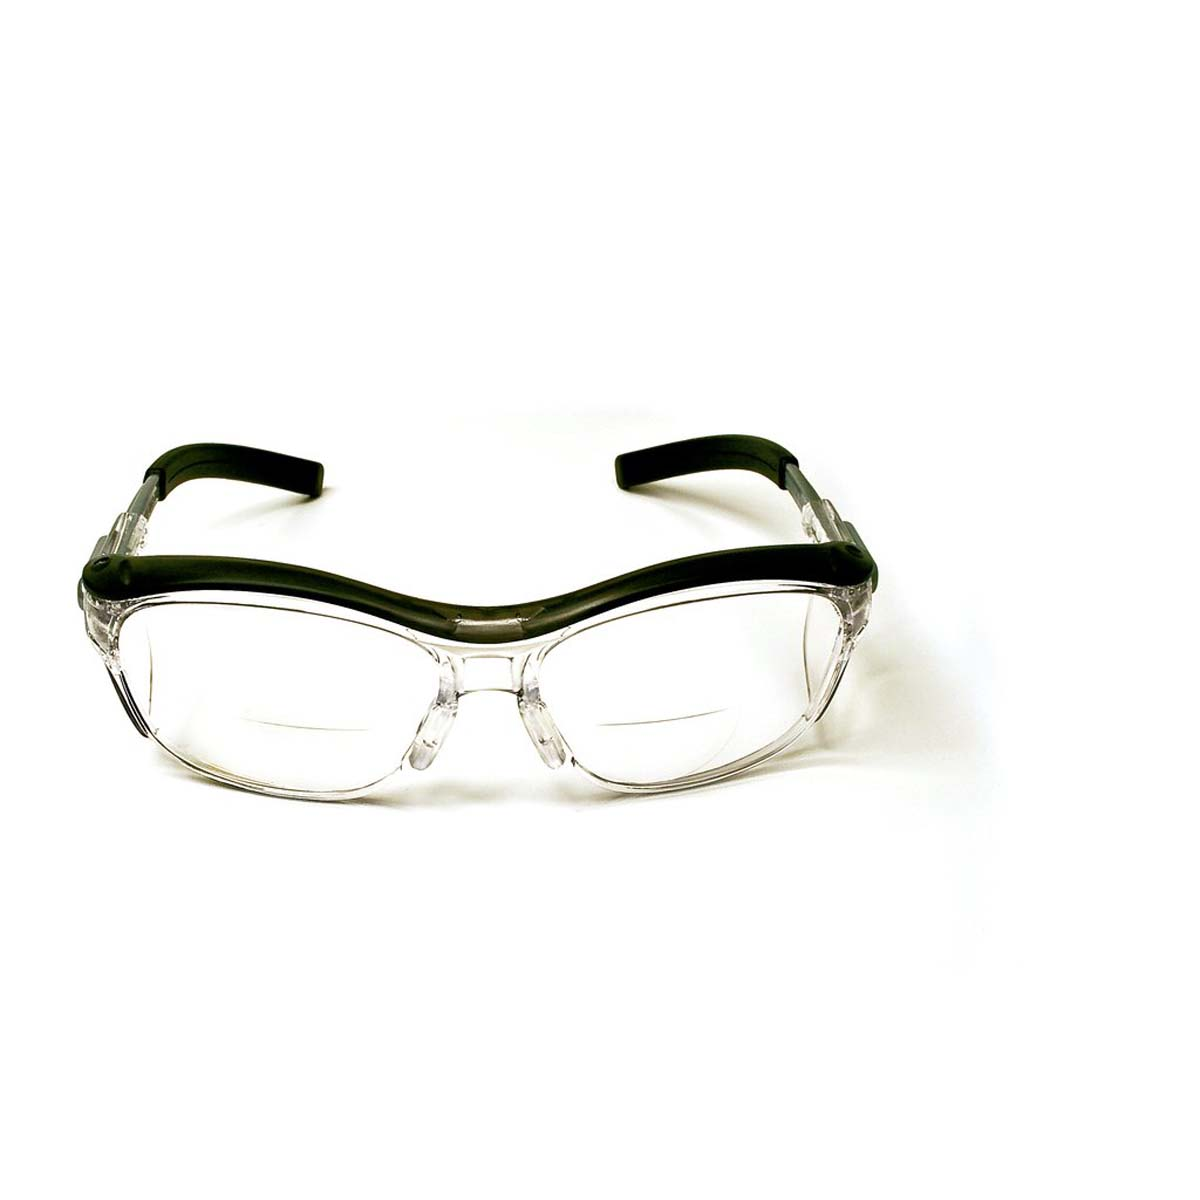 """3Mâ""""¢ Nuvoâ""""¢ Reader Protective Eyewear 11434-00000-20 Clear Lens, Gray Frame, +1.5 Diopter"""